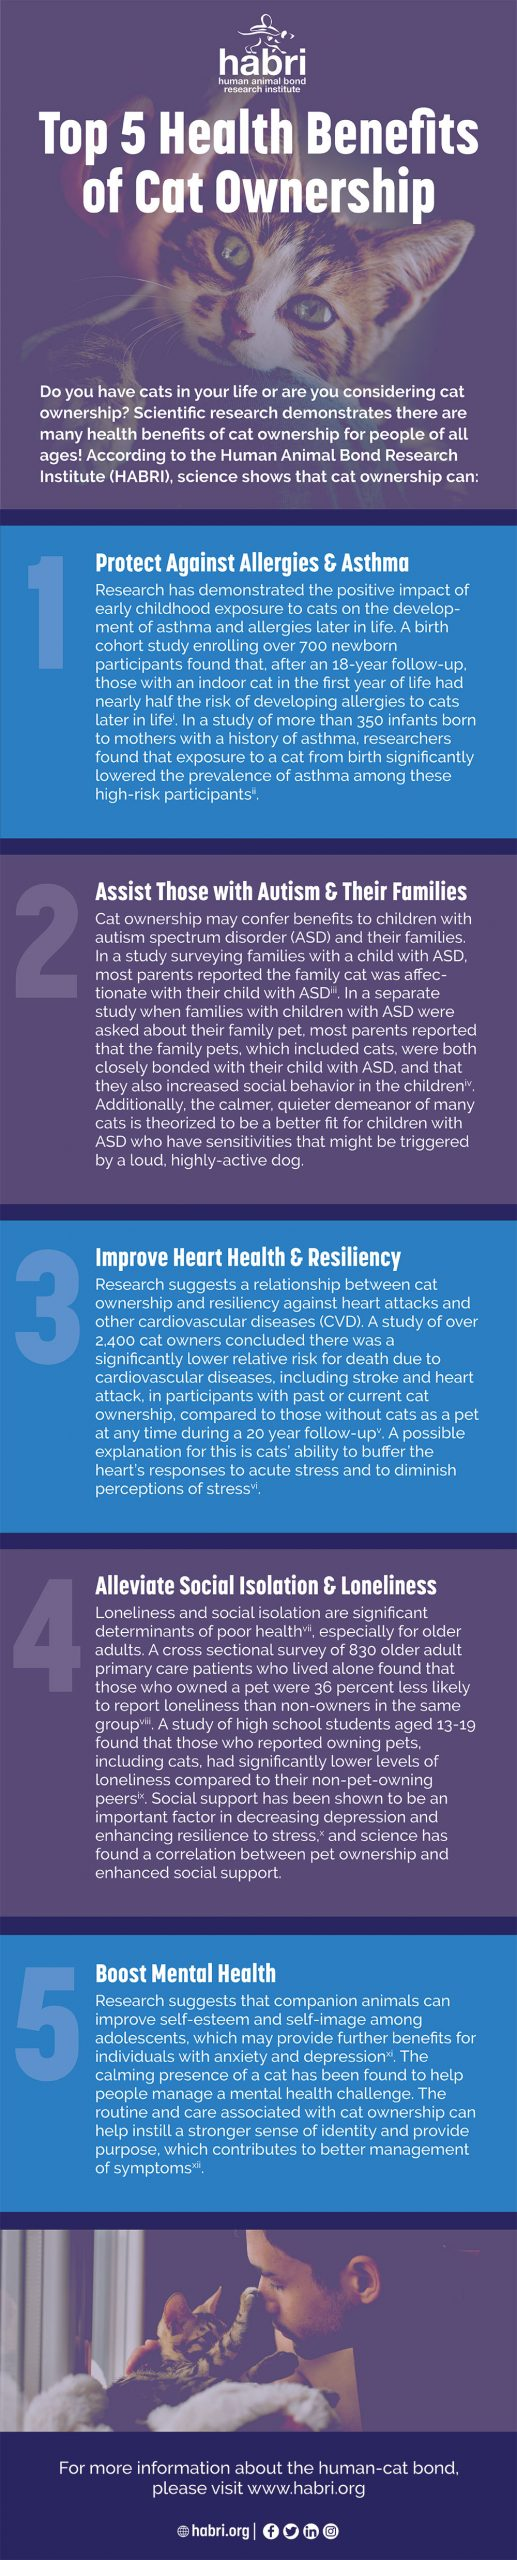 Top 5 Health Benefits of Cat Ownership Infographic